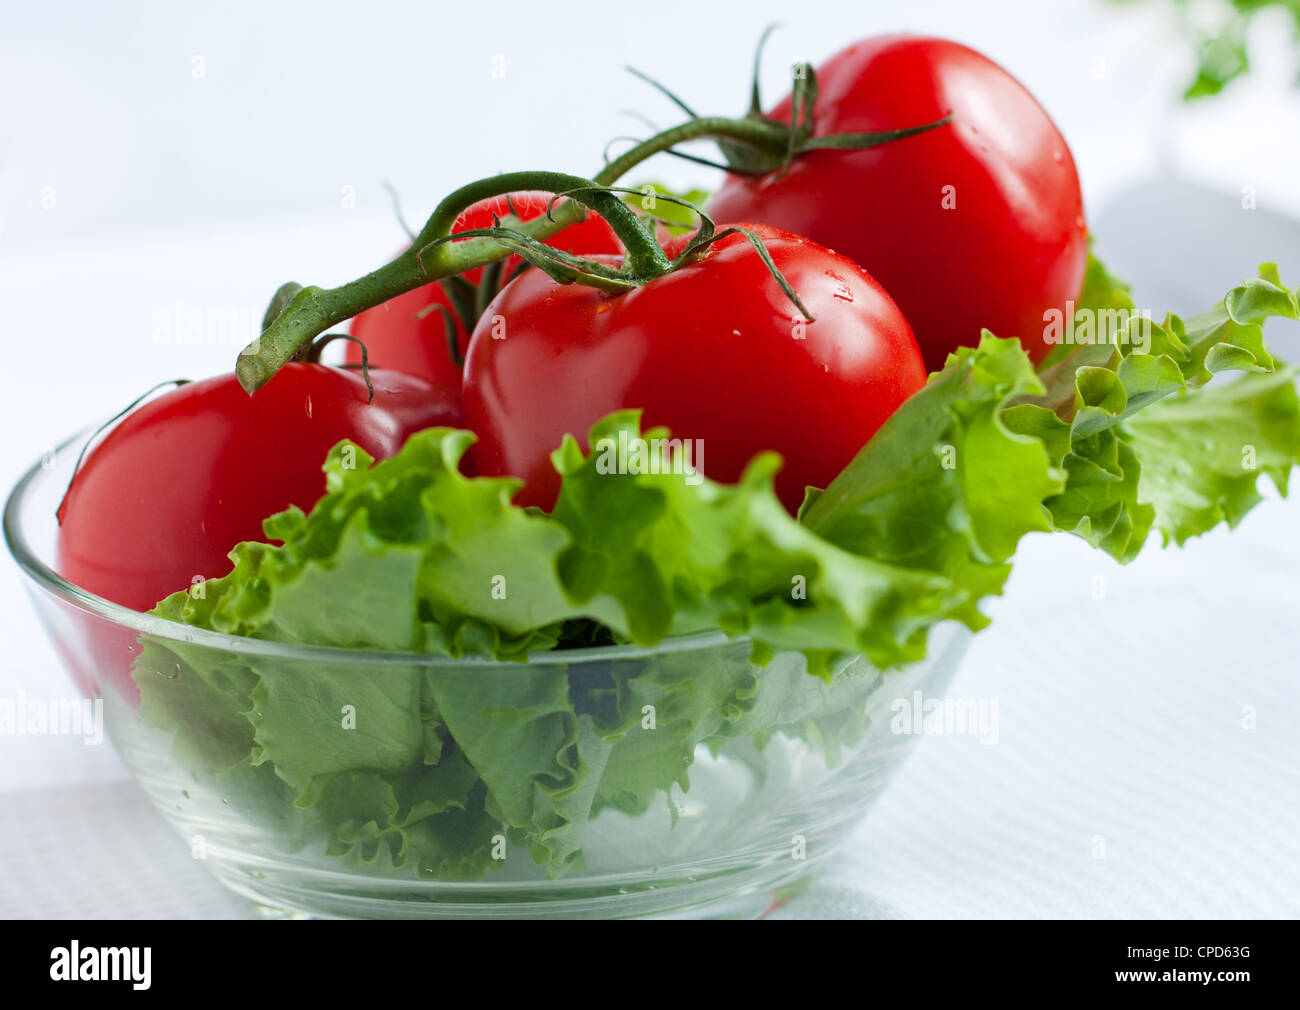 Red tomatoes in a transparent round salad bowl - Stock Image